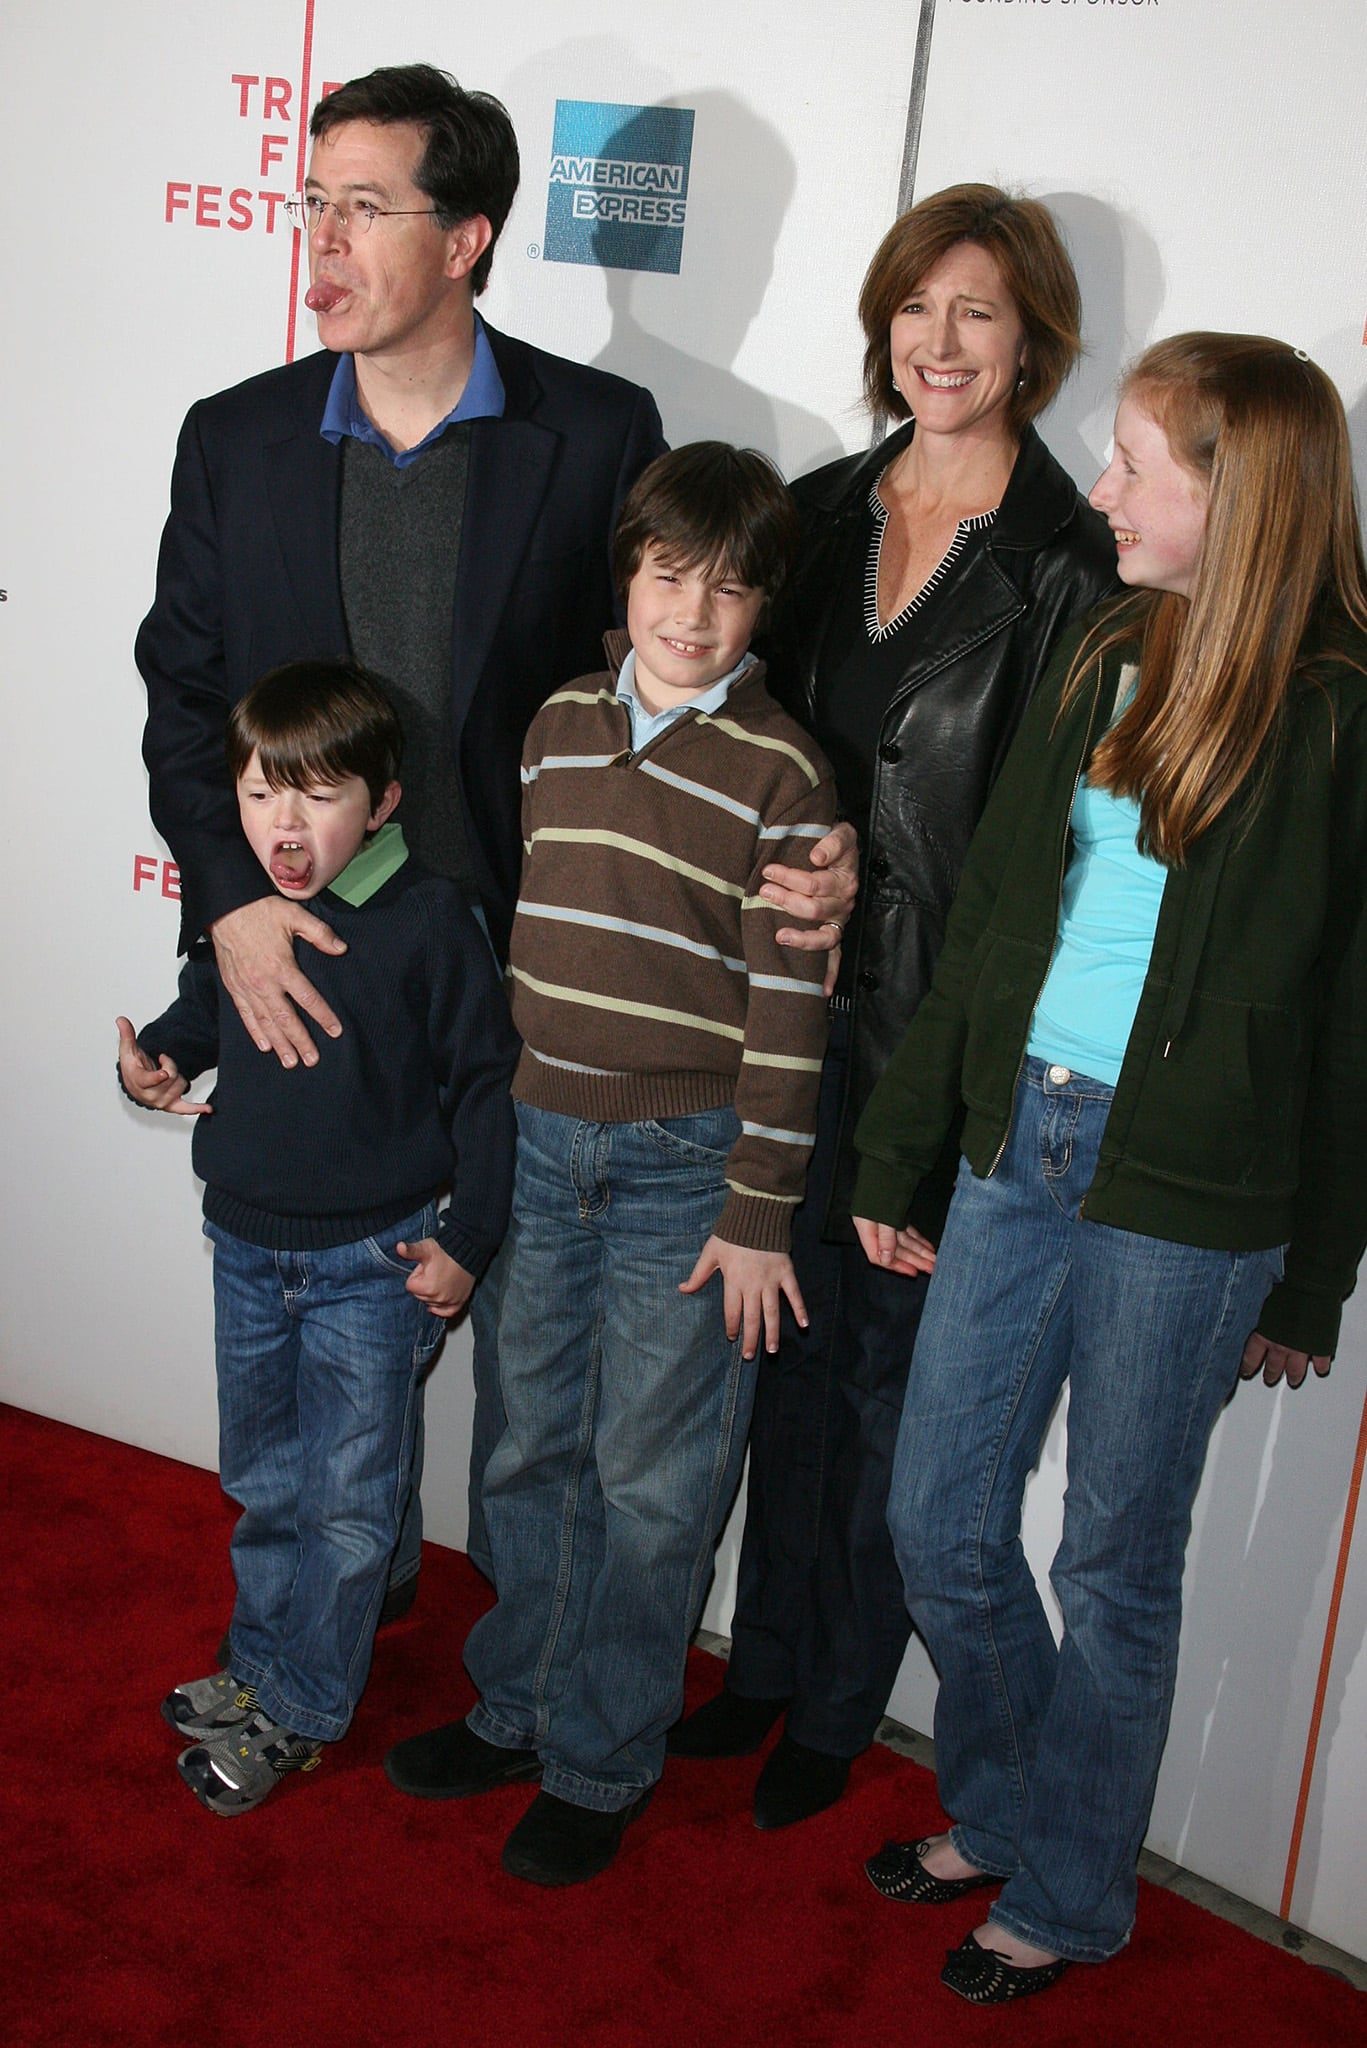 Stephen Colbert brings his family, including his wife Evelyn McGee and their three kids, at the Tribeca Film Festival 2008 premiere of Speed Racer on May 3, 2008